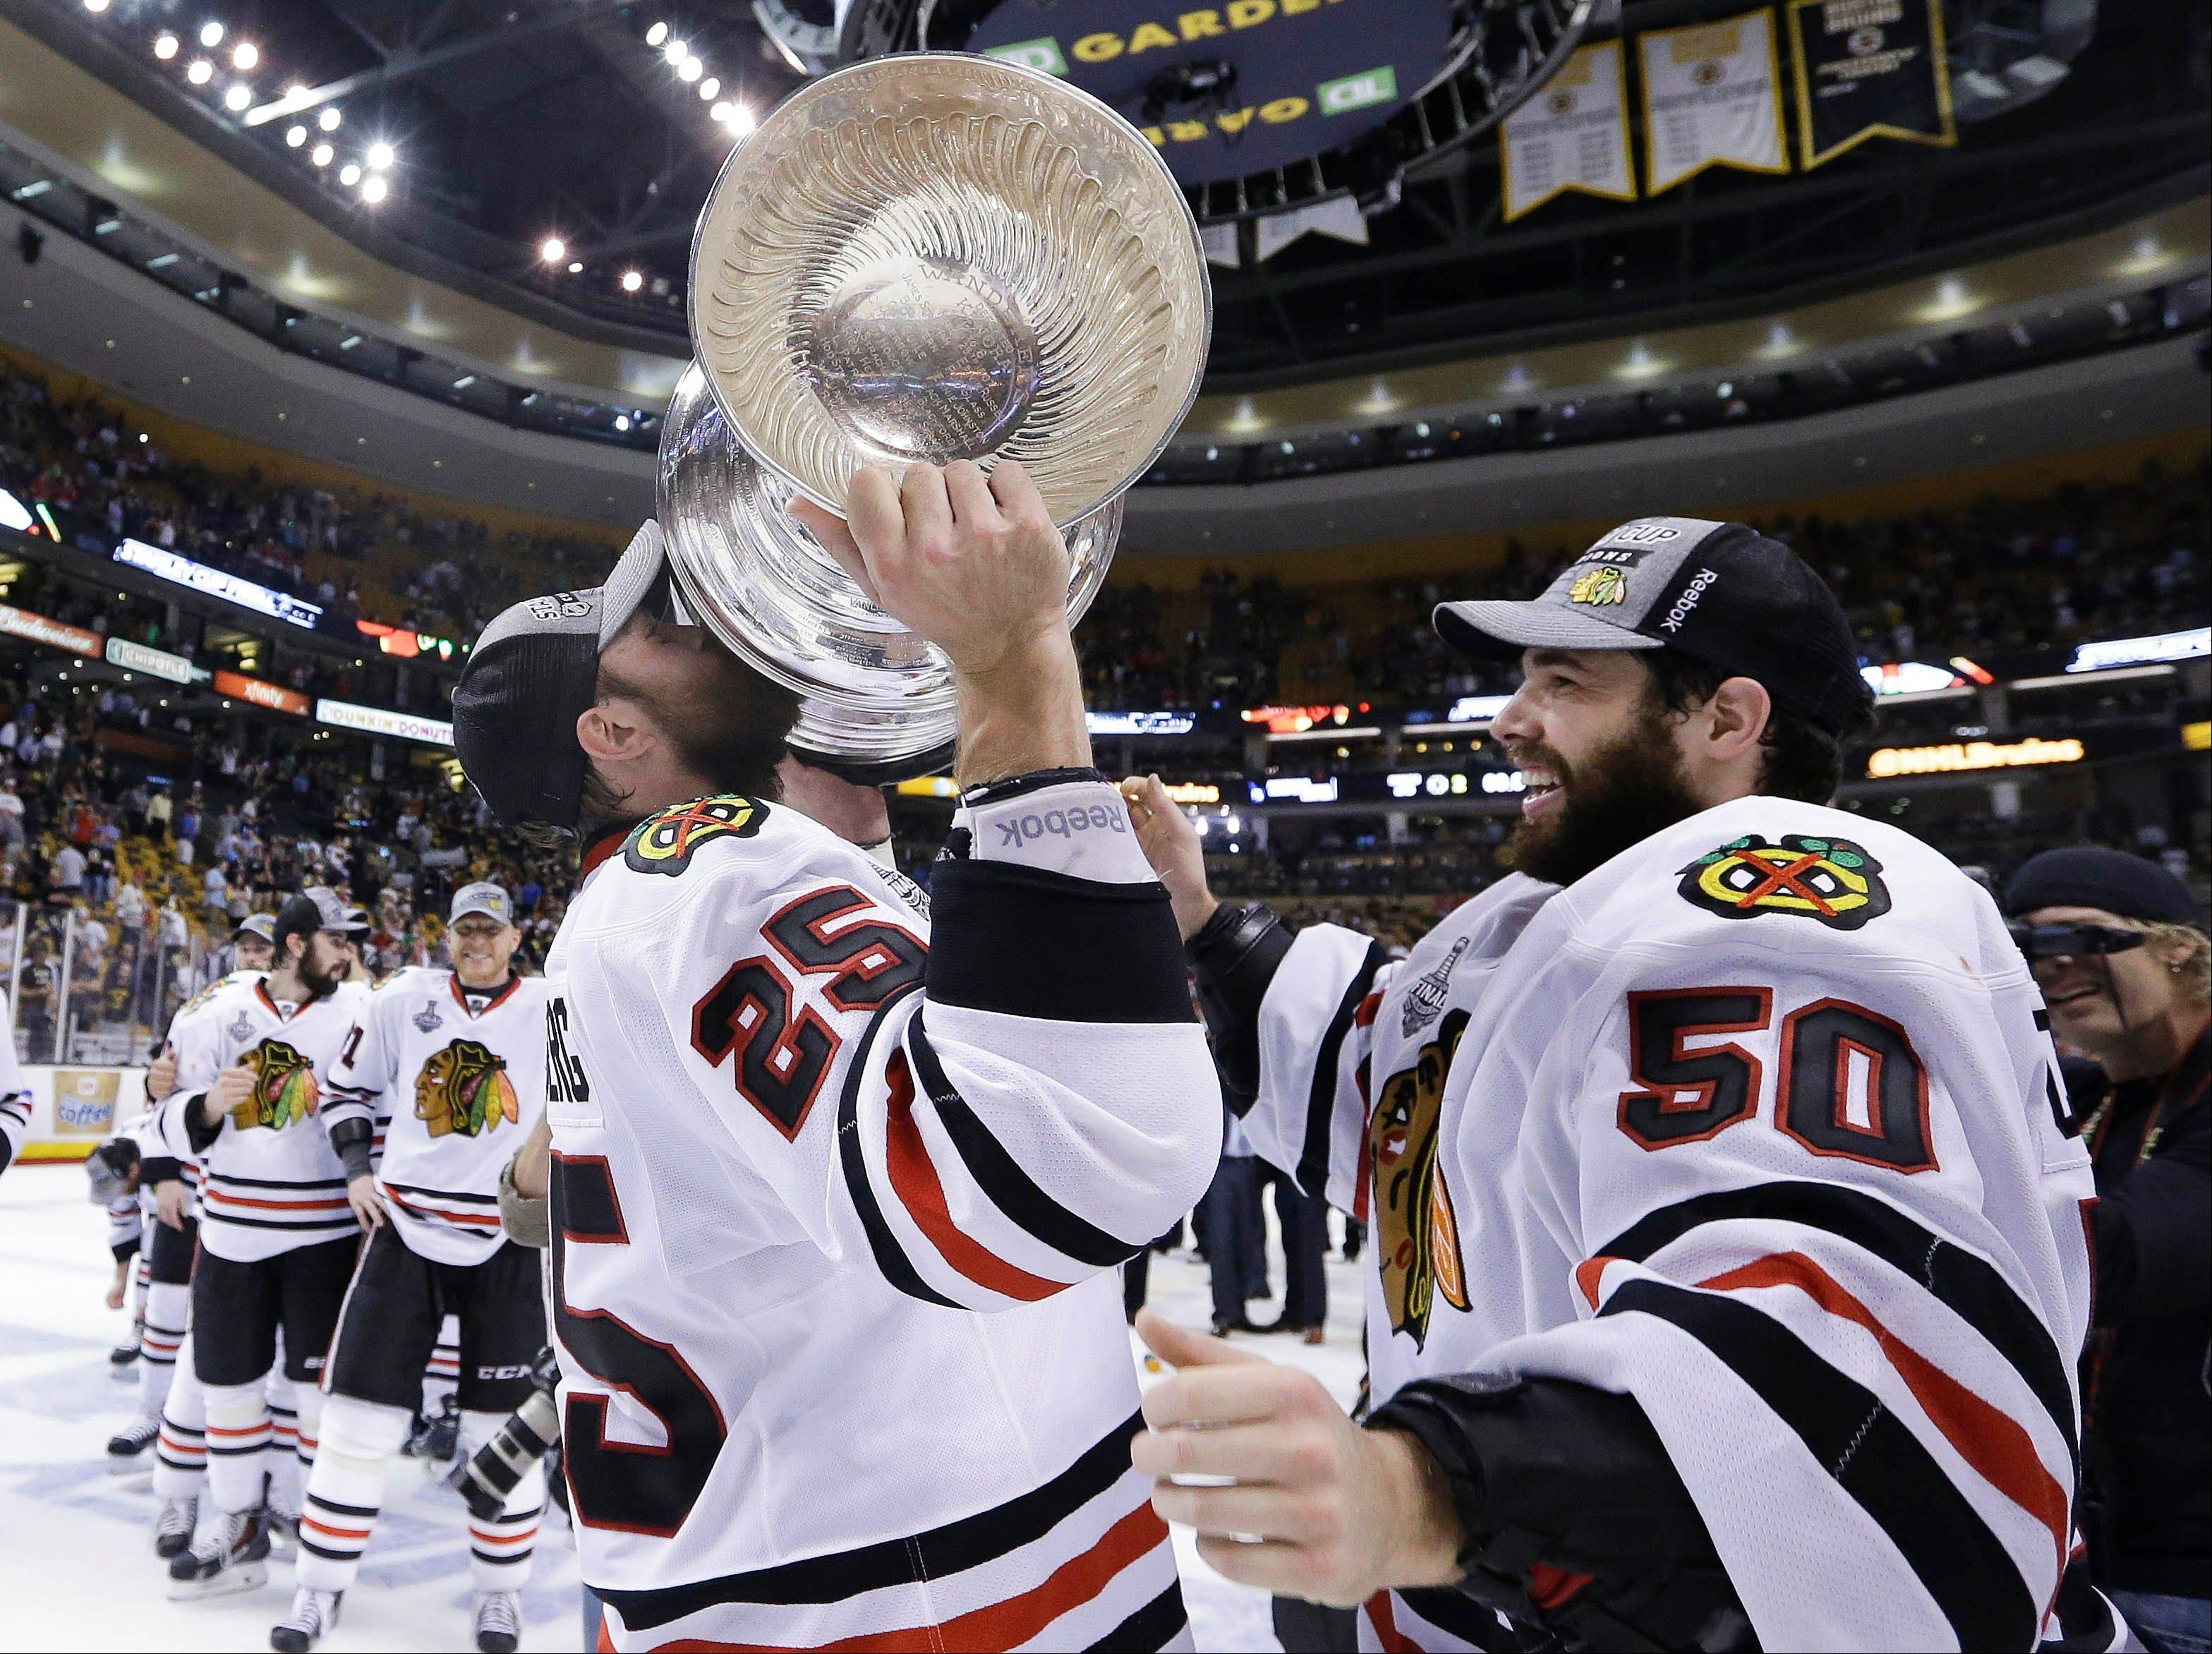 Images: Blackhawks vs. Bruins, Game 6